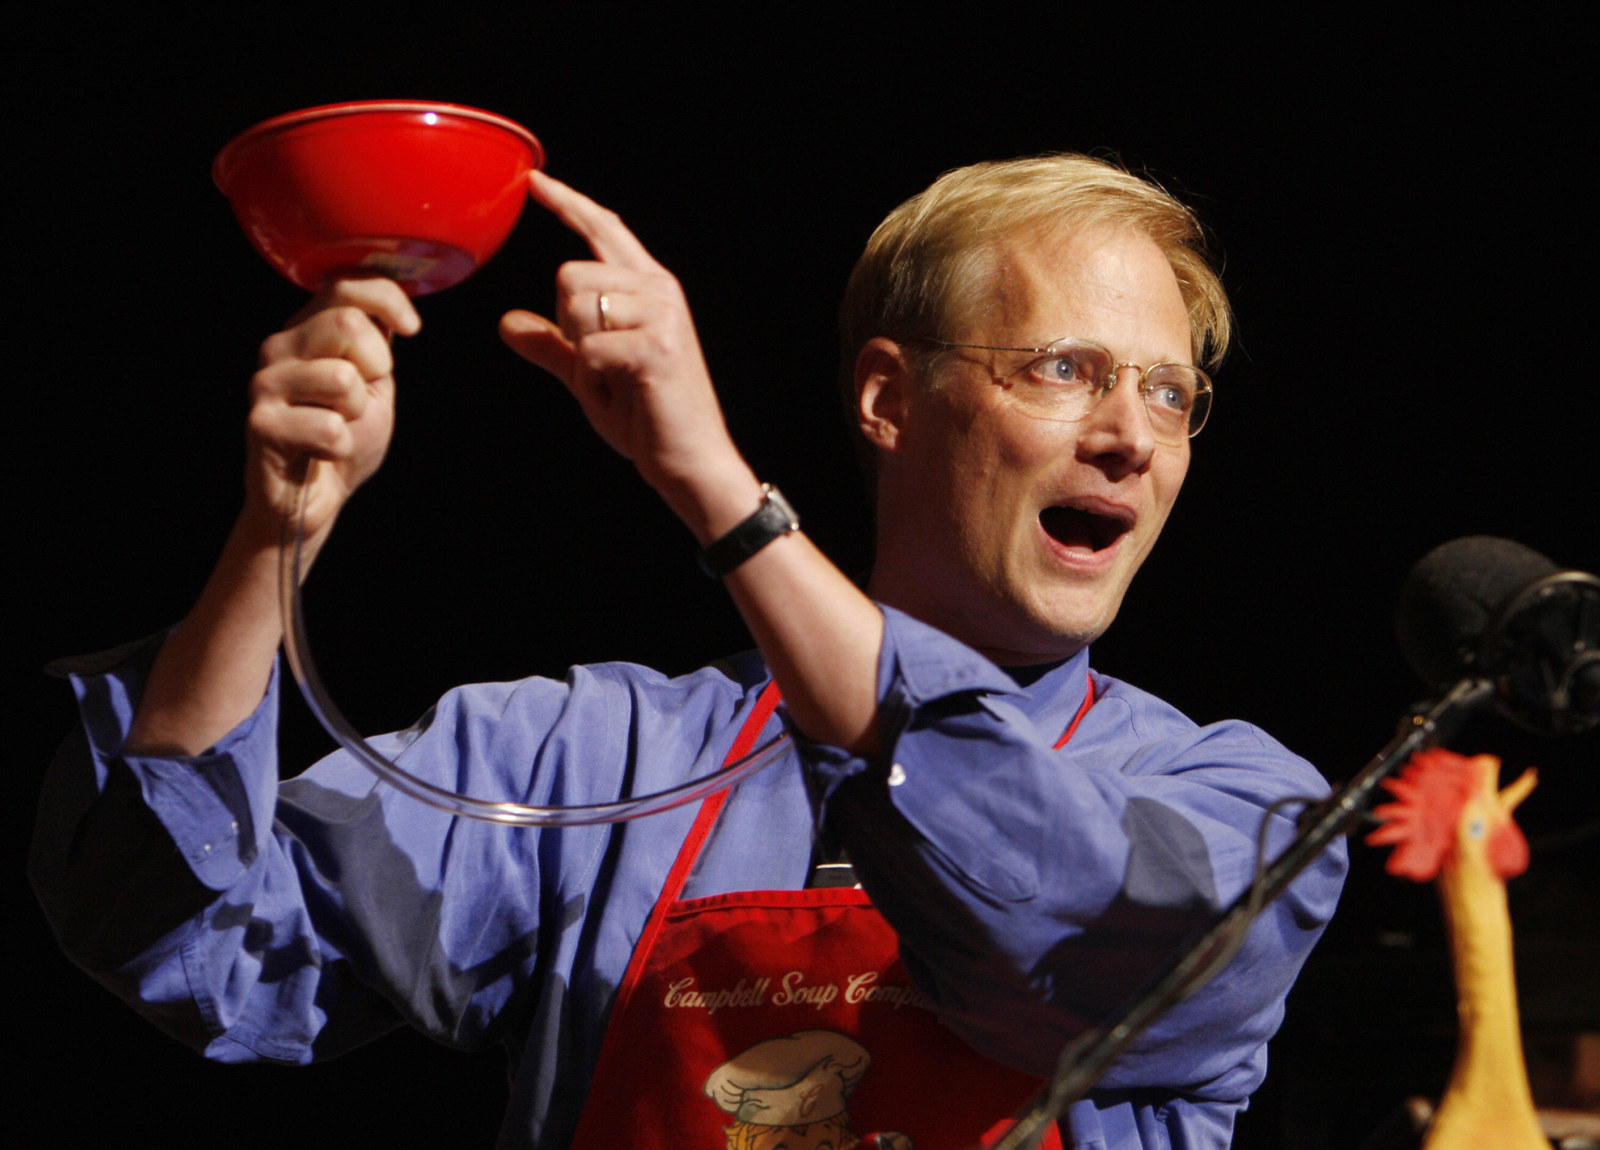 Here's How Cornell Scientist Brian Wansink Turned Shoddy Data Into Viral Studies About How We Eat